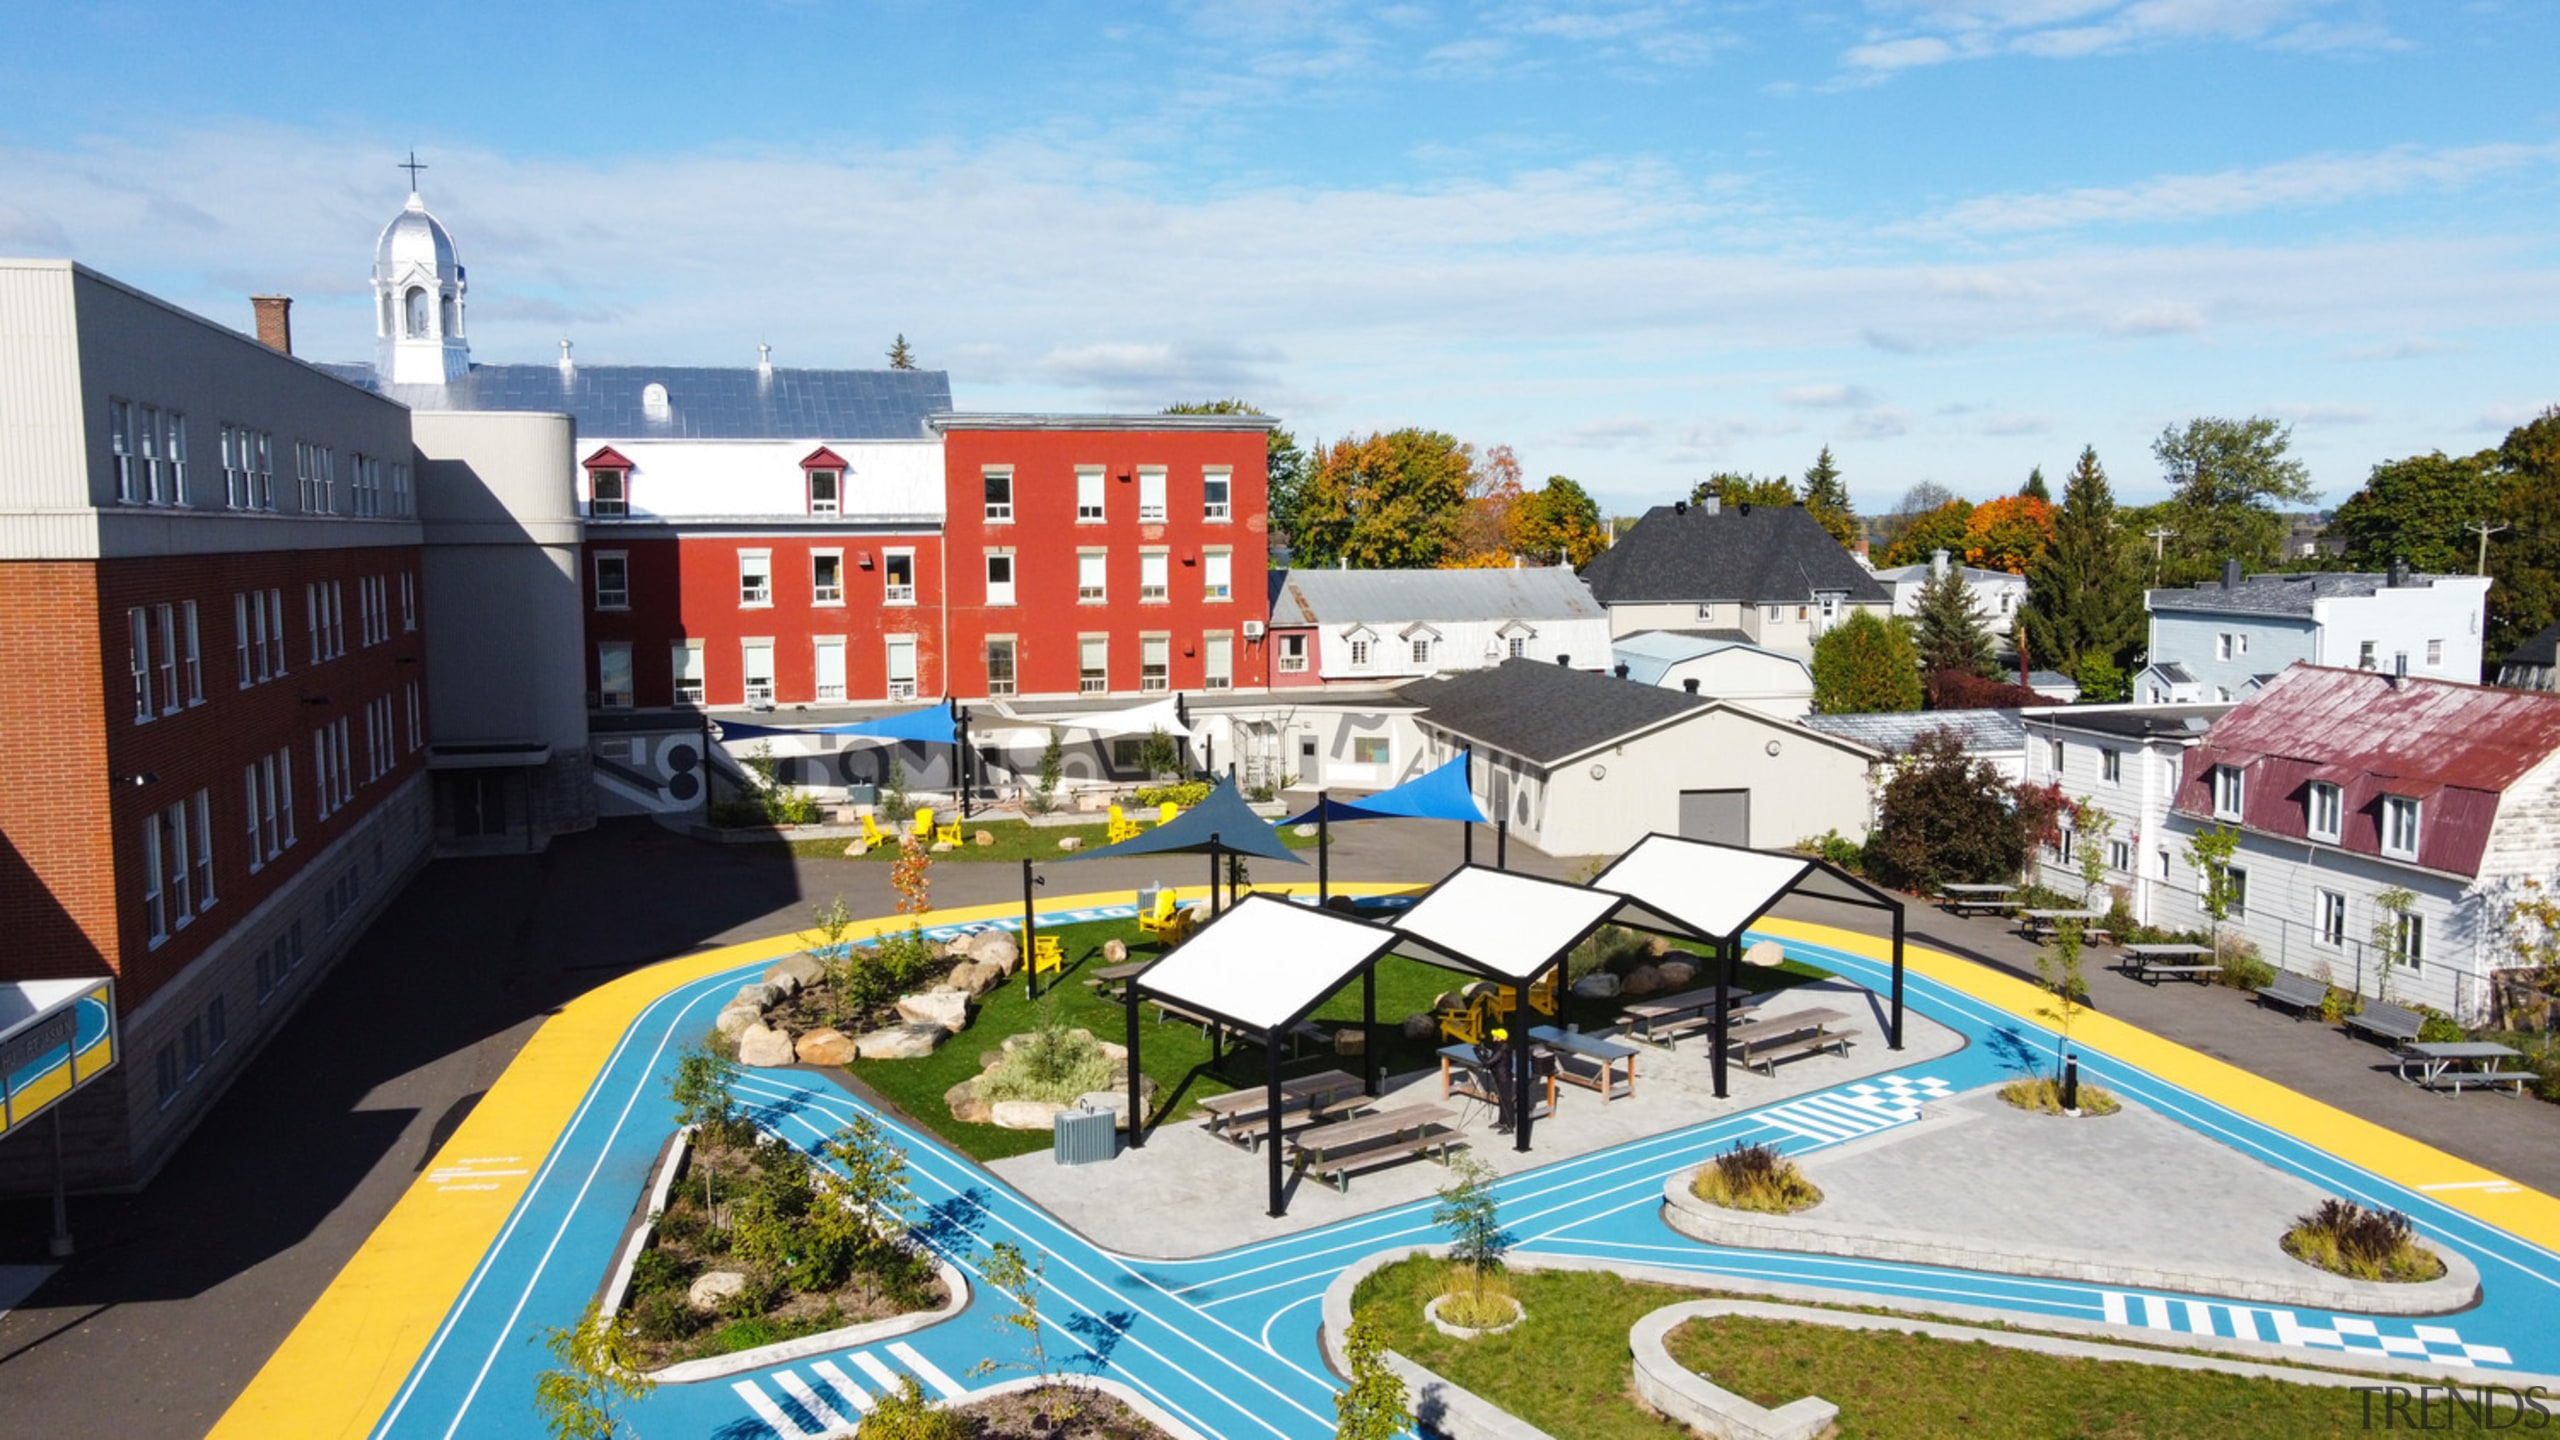 View of the central area of Collège Saint-Paul's